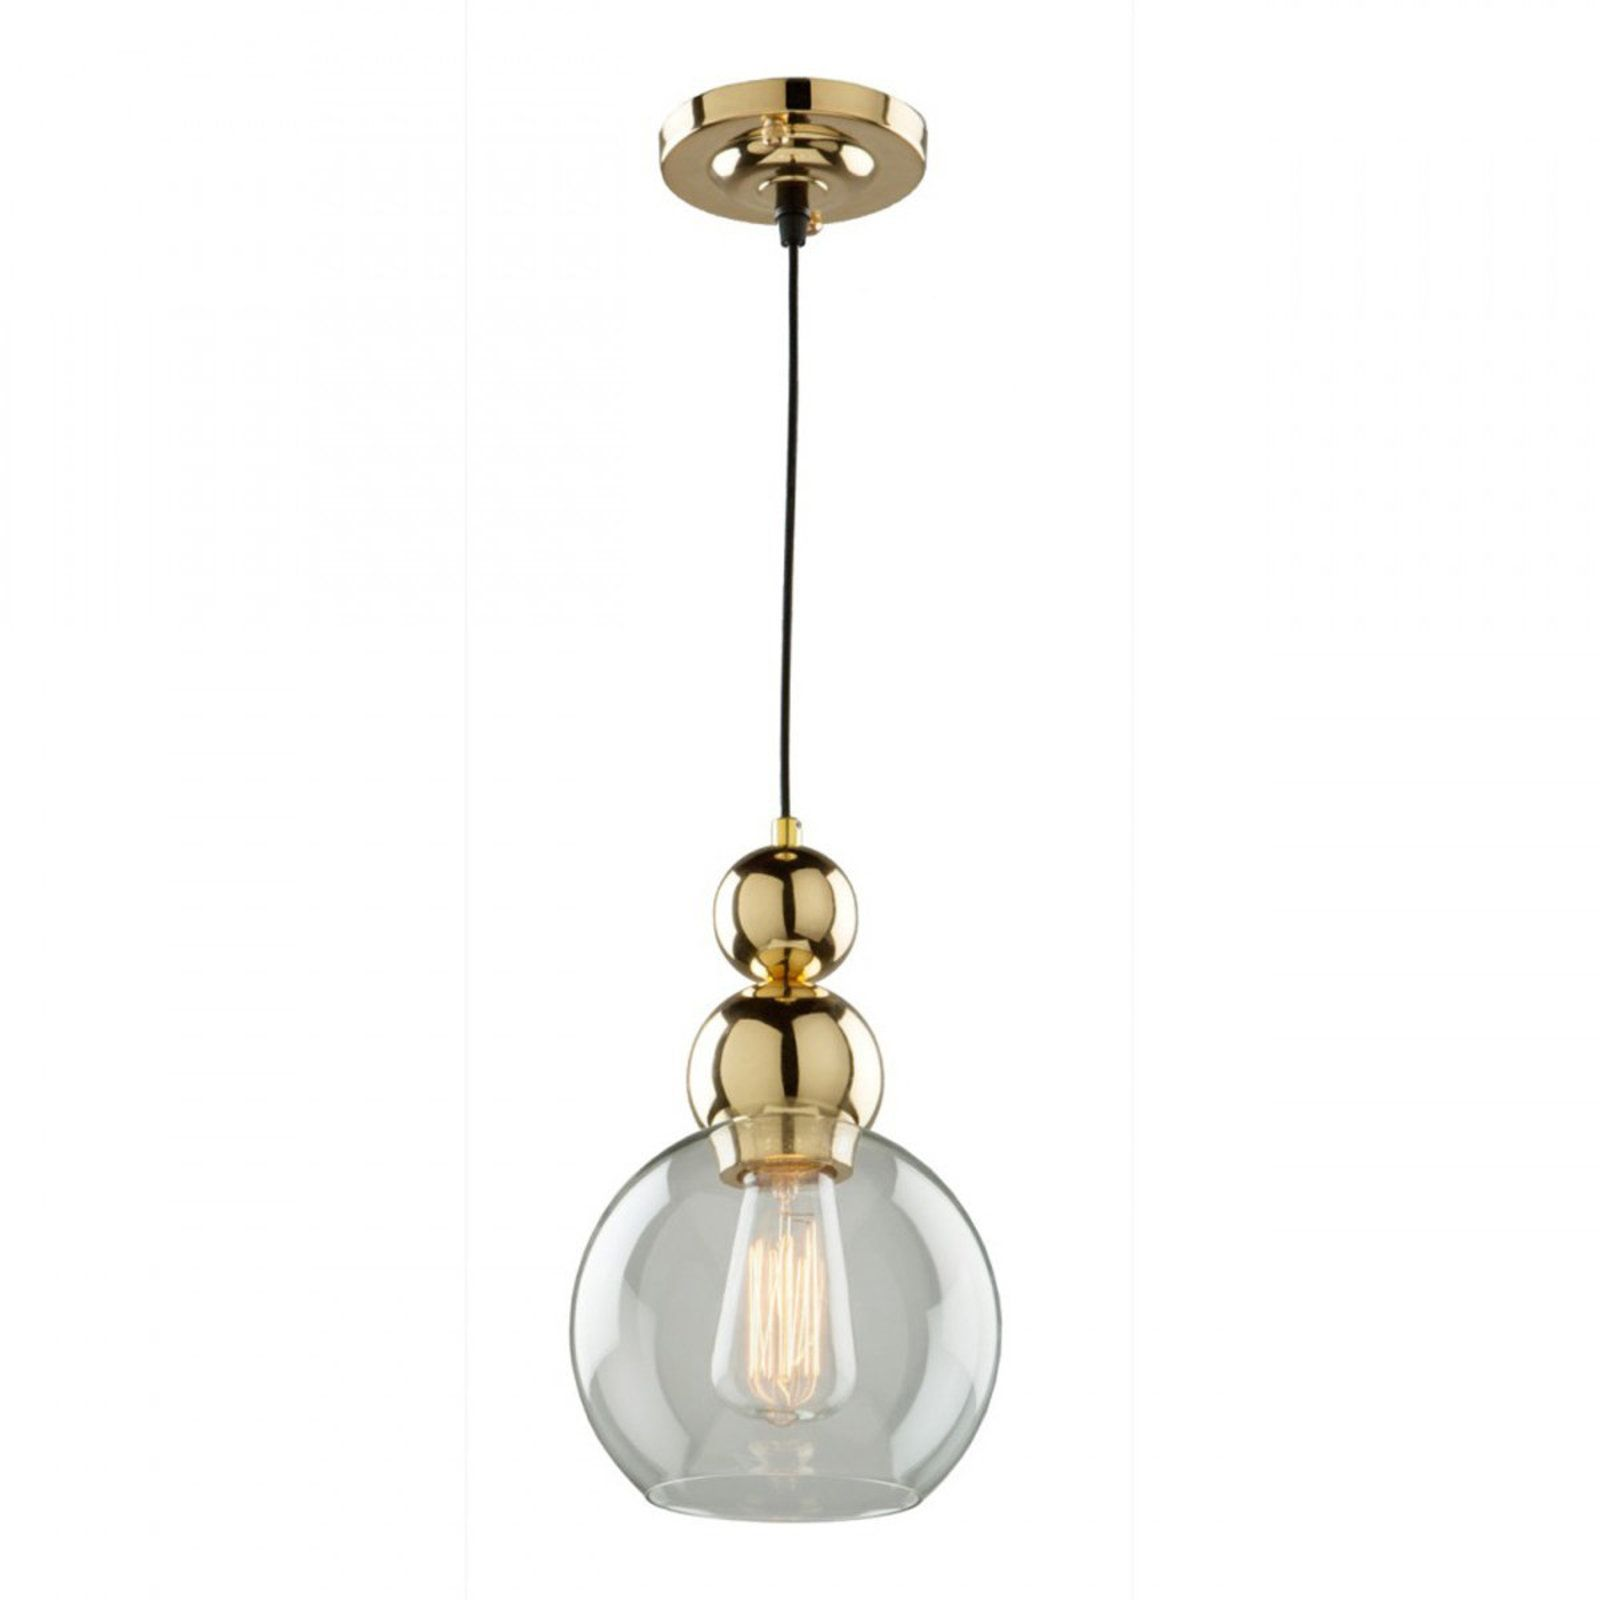 Golden Globe Pendant Light Small Gold Globe Pendant Light Small